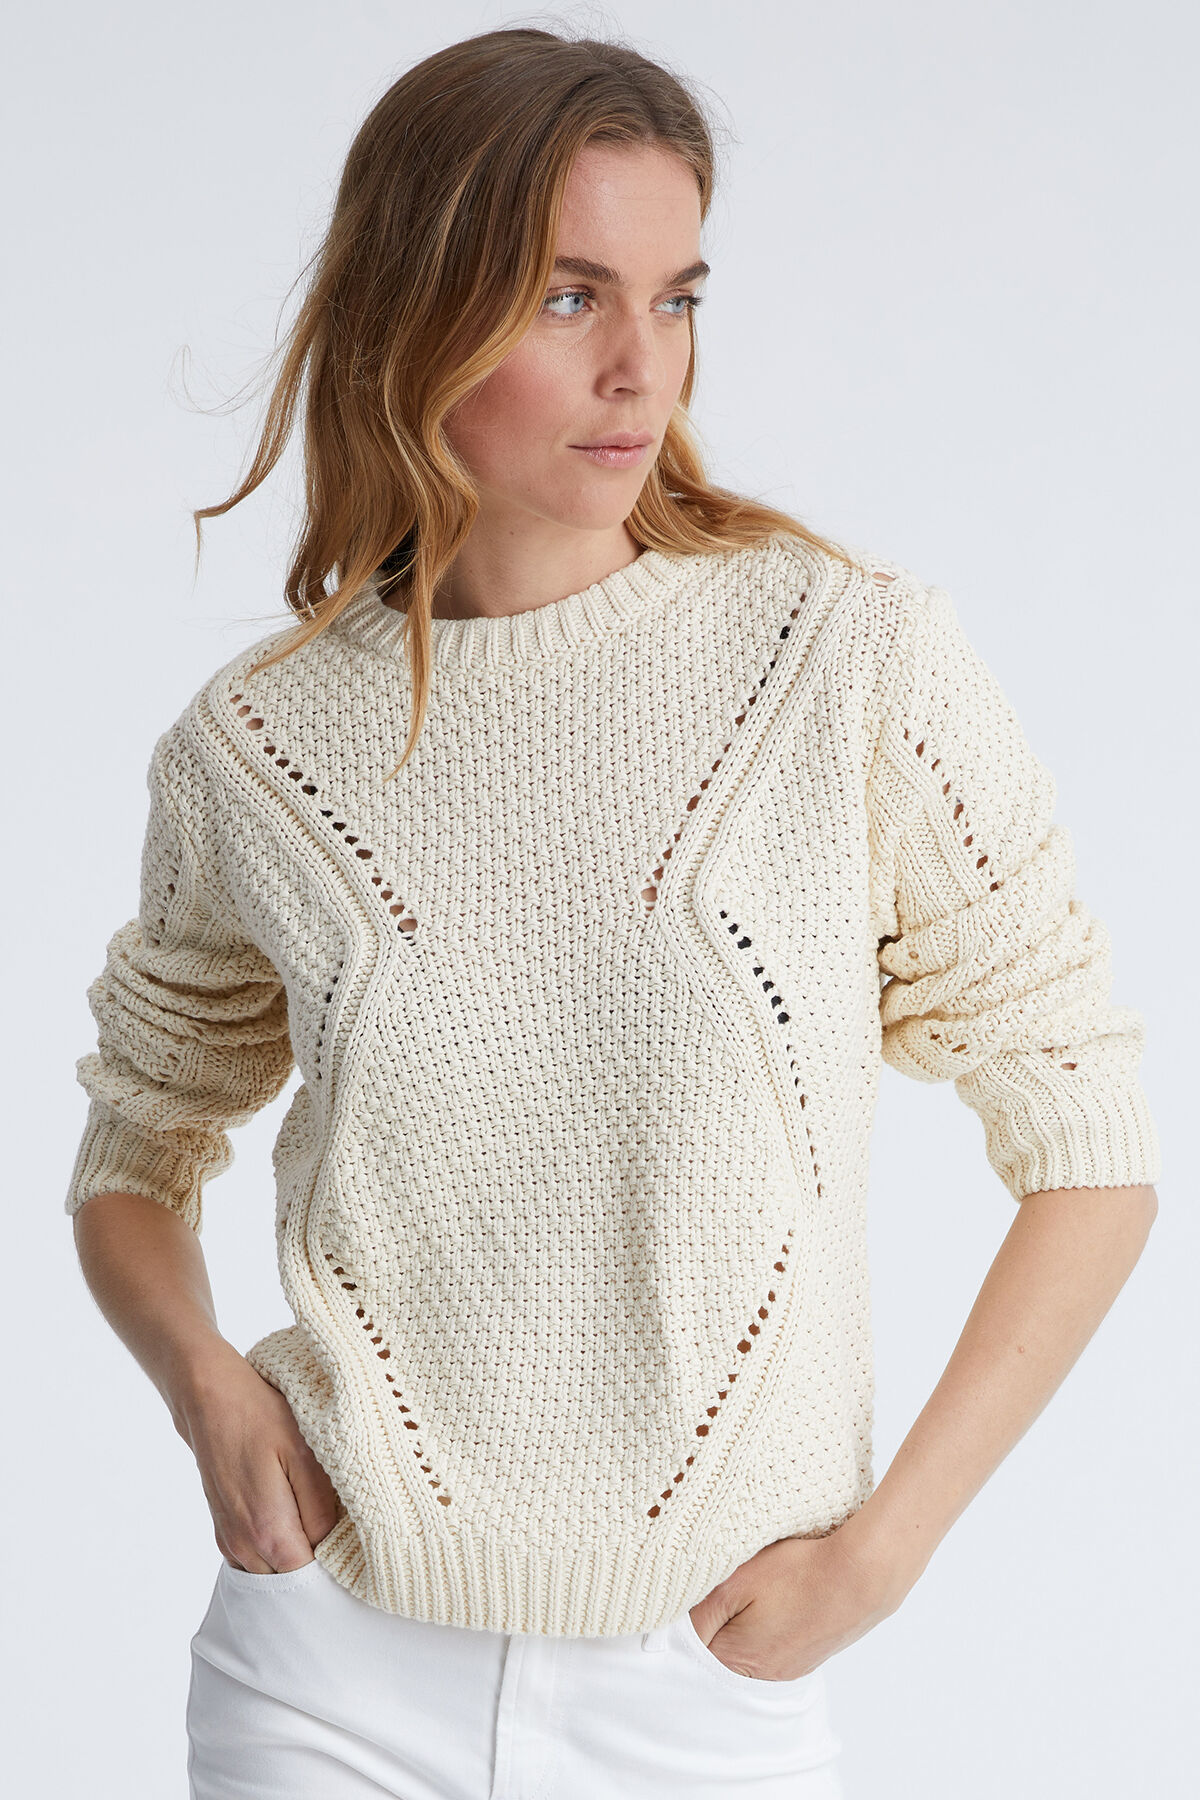 OAKFIELD JUMPER Chunky Cotton Yarn - Relaxed Fit